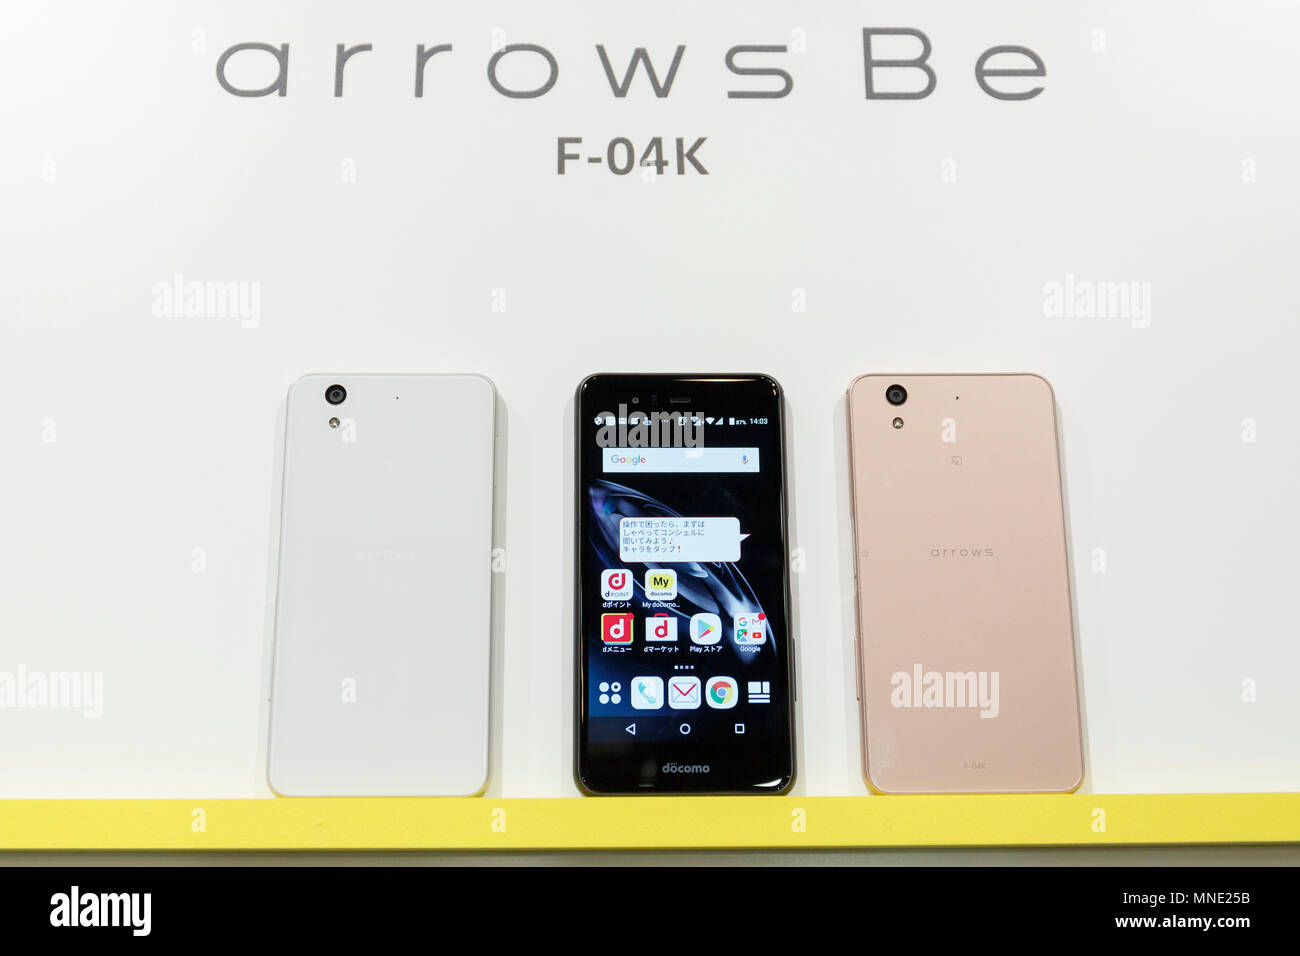 DOMOCO's new smartphone arrows Be (F-04K) on display during